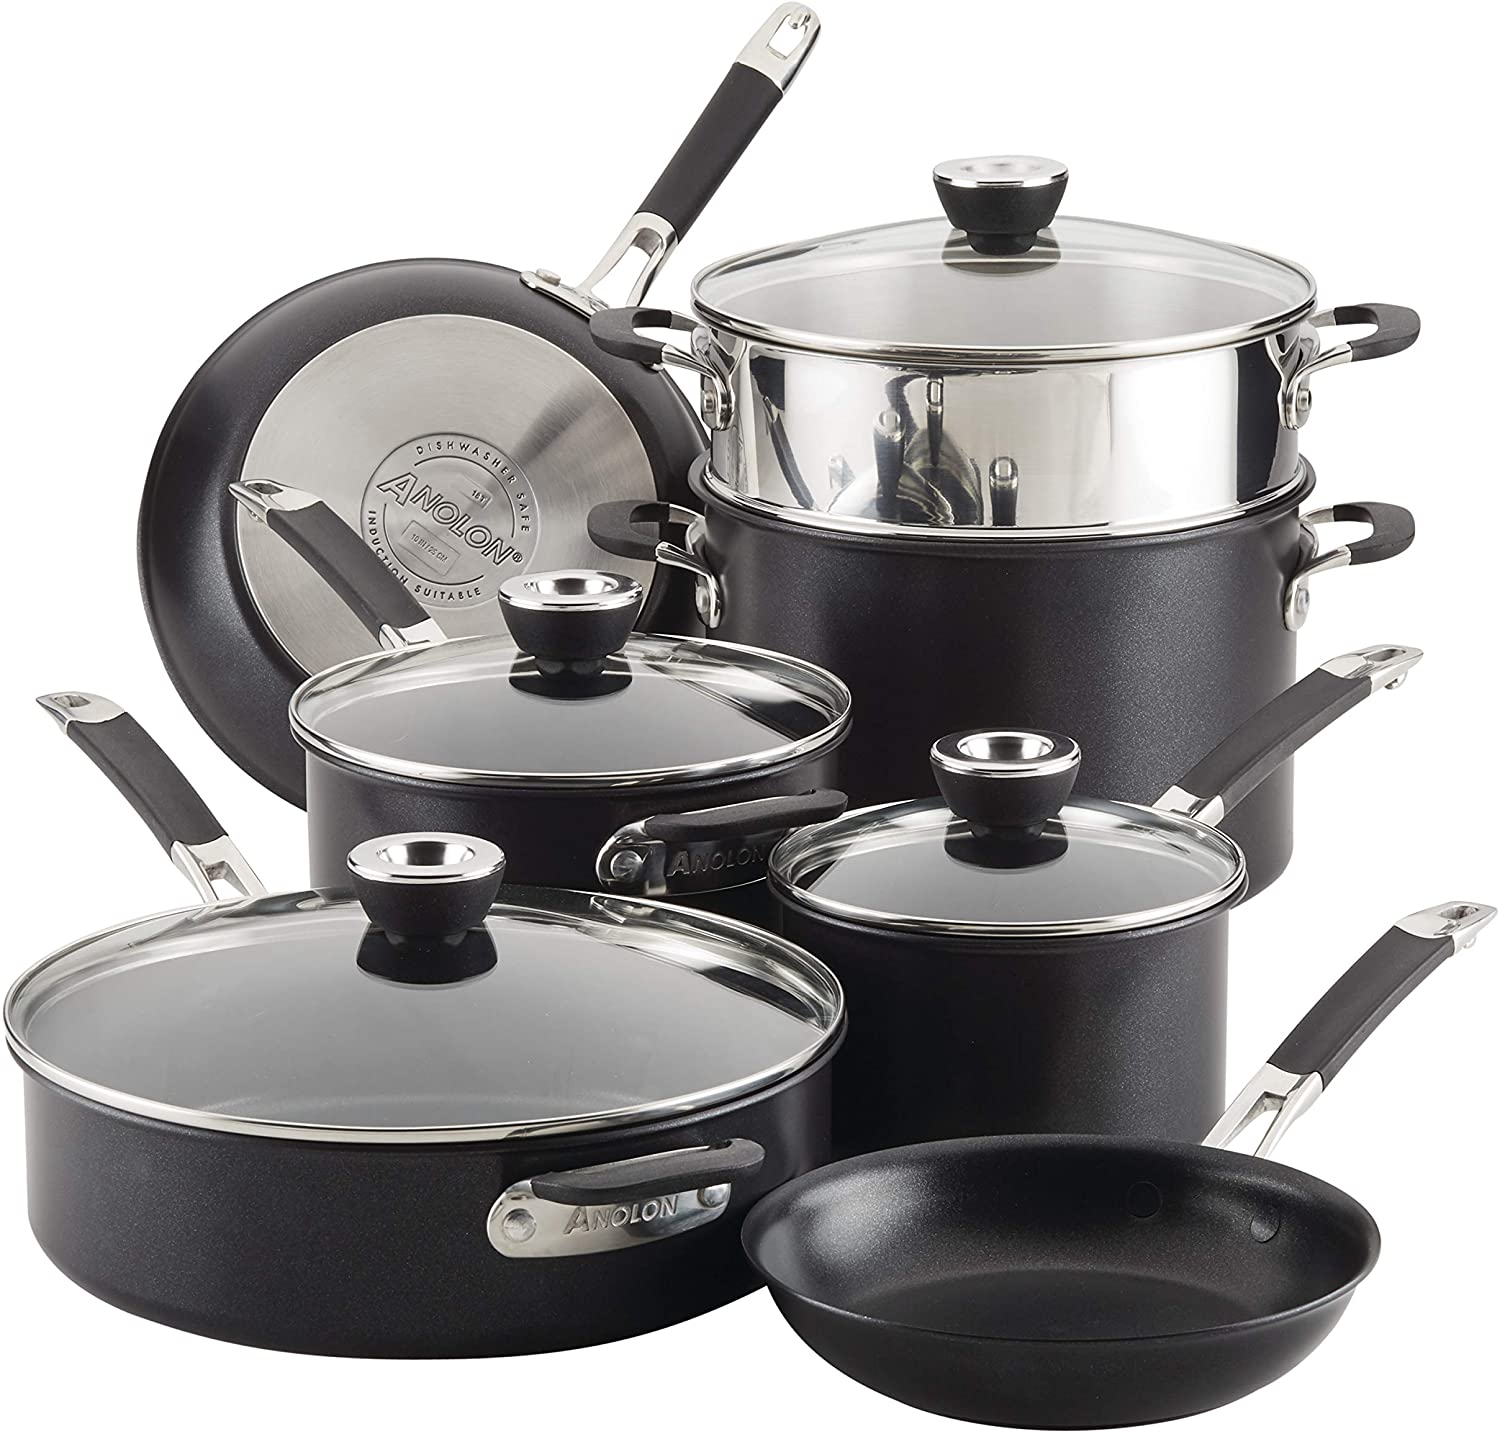 Anolon Cookware Set – Reviews